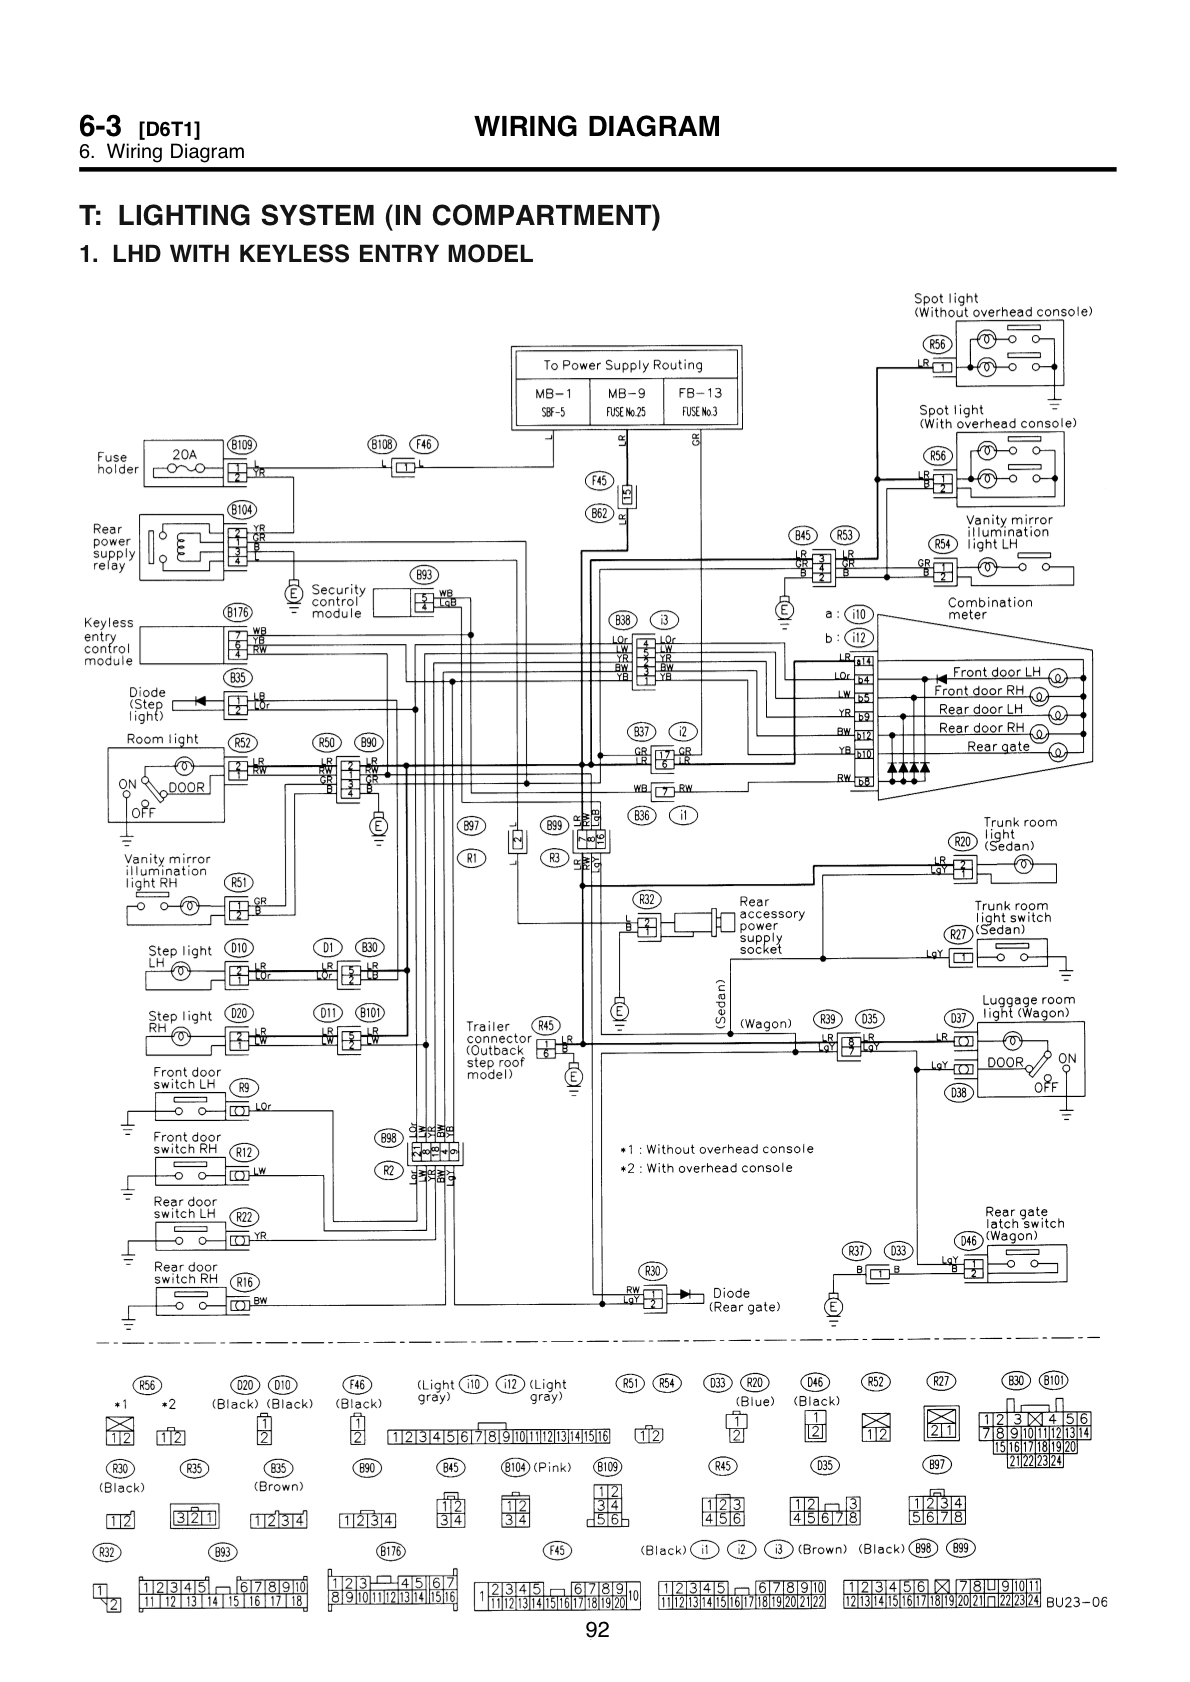 1996 subaru legacy sedan engine diagram wiring diagram services u2022 rh zigorat co